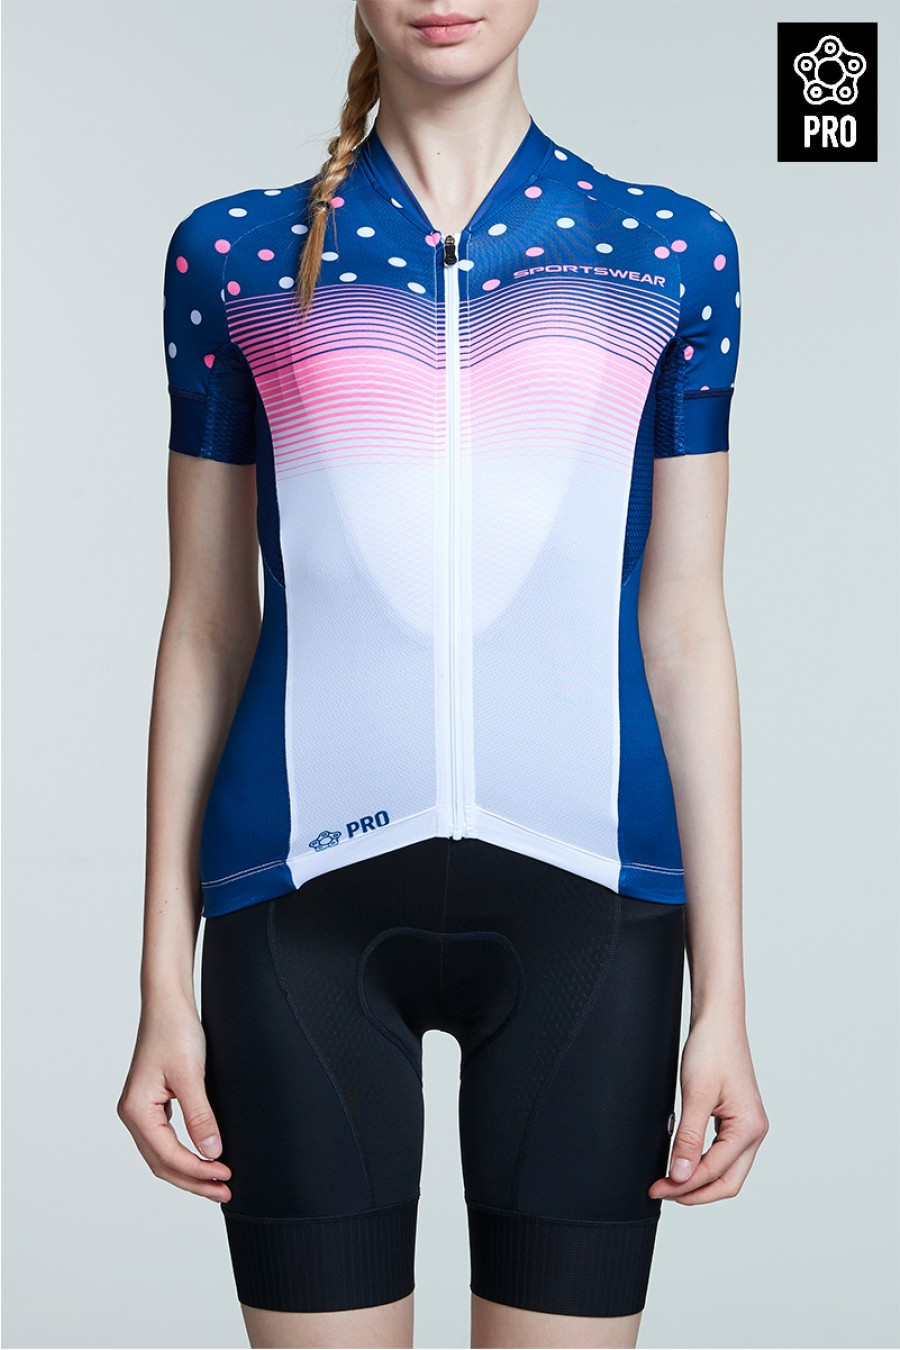 Buy Cool Womens Cycling Jerseys for Bike Racing da462a0ee6c0